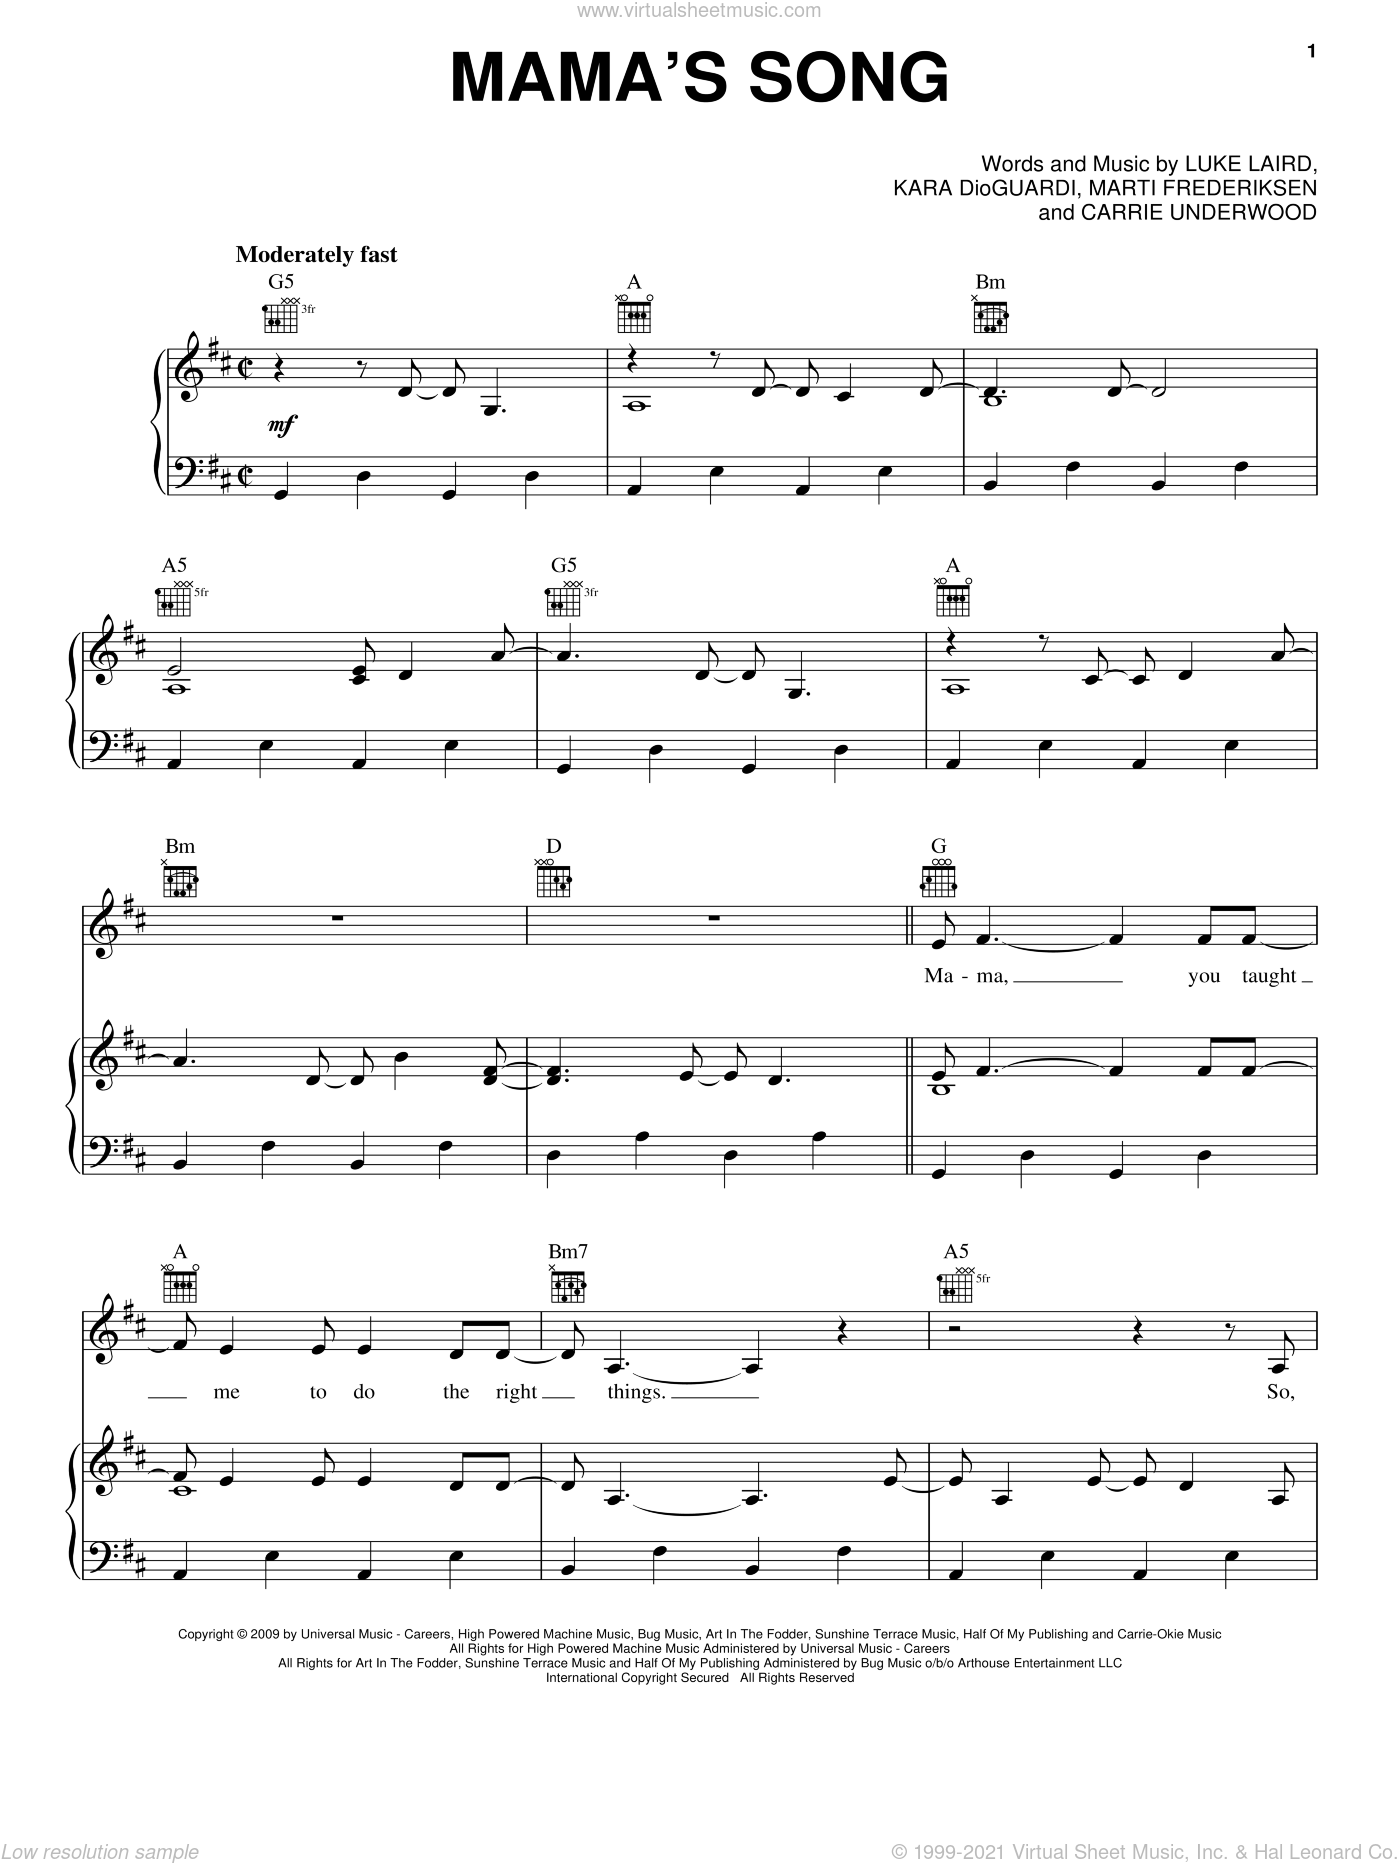 Mama's Song sheet music for voice, piano or guitar by Carrie Underwood, Kara DioGuardi, Luke Laird and Marti Frederiksen, intermediate skill level